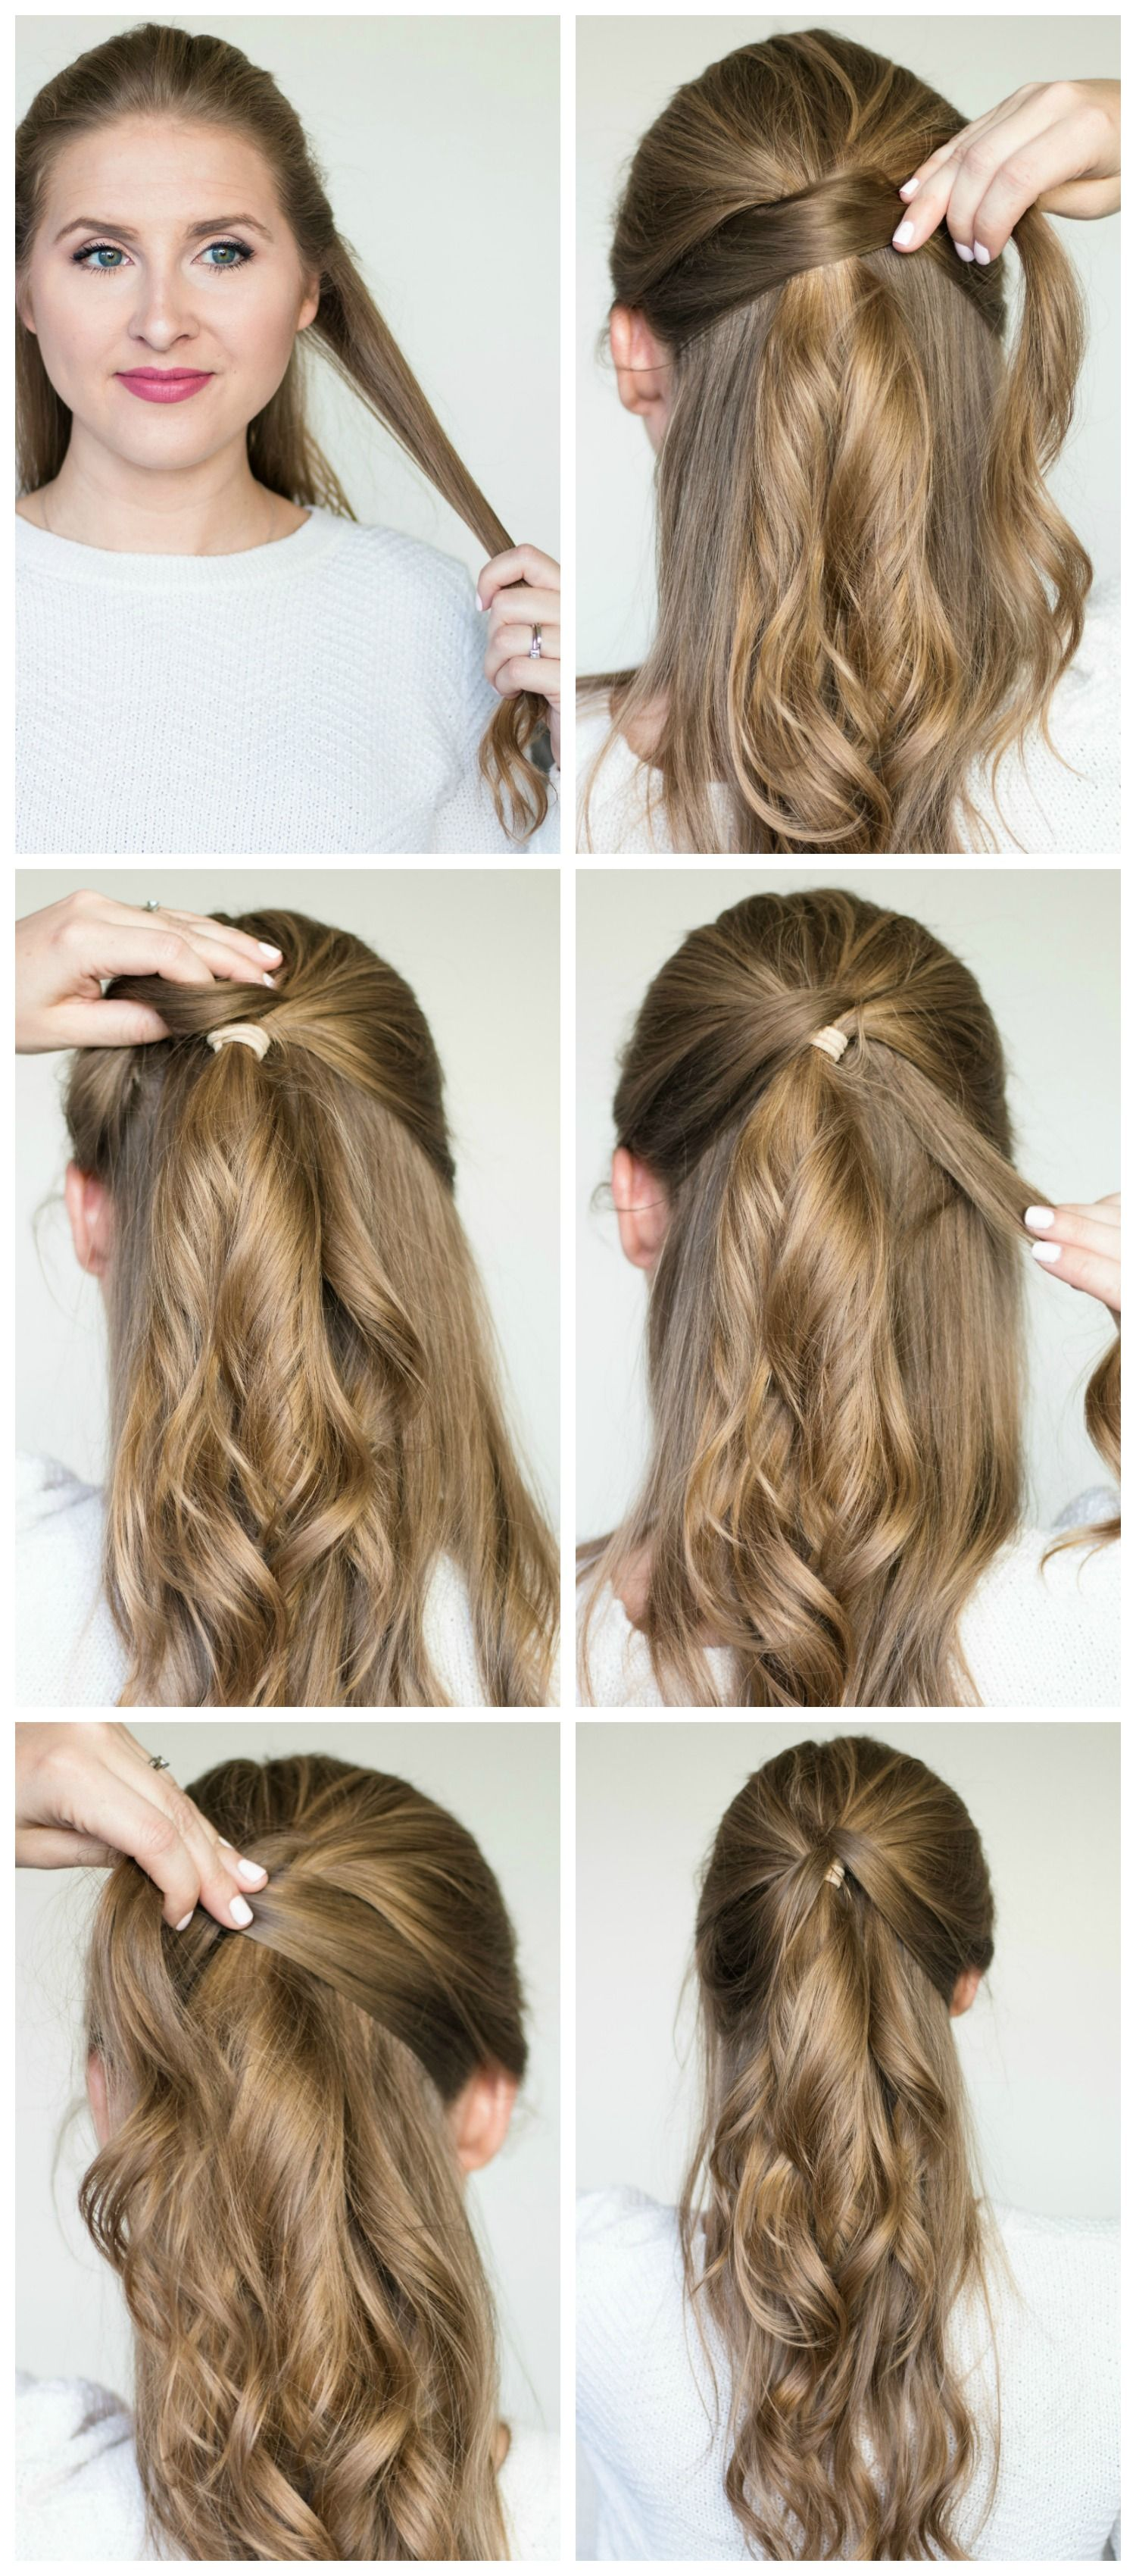 Quick & easy hairstyle tutorials (braided messy bun, twisted half